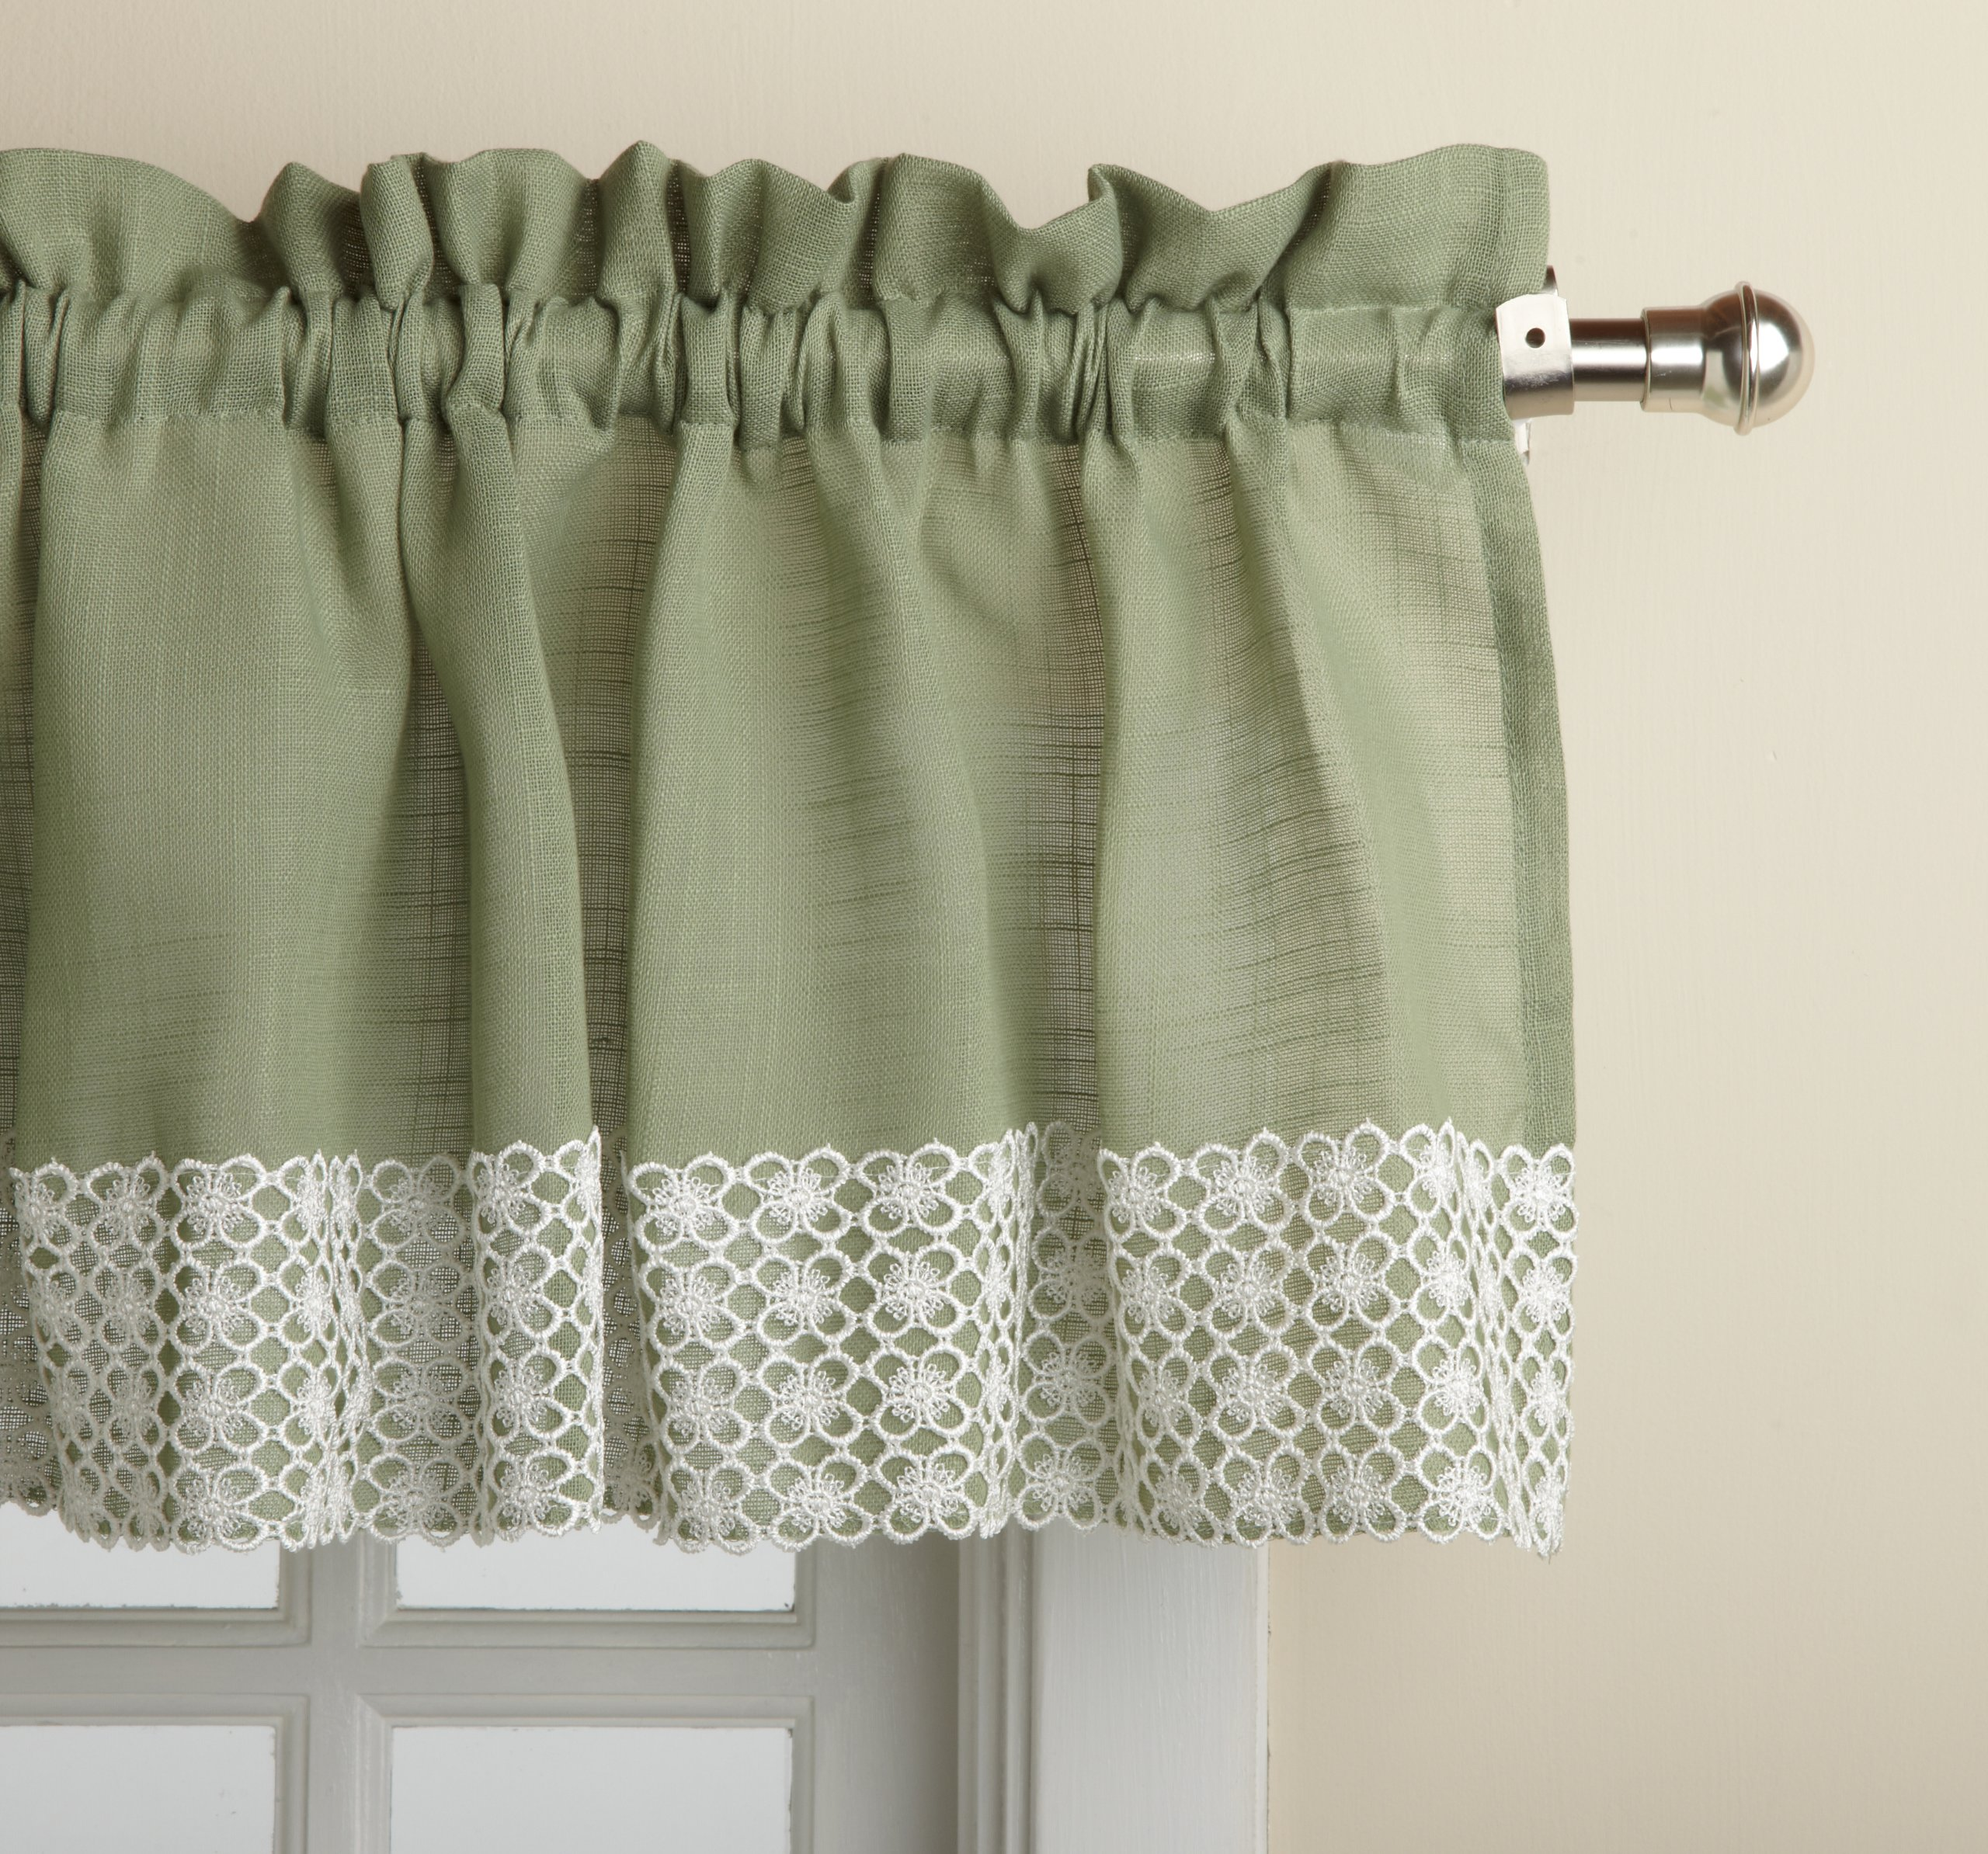 blue valances christmas bouquet ballad pertaining set white of and with window image home cookwithalocal to your up waverly valance navy dres